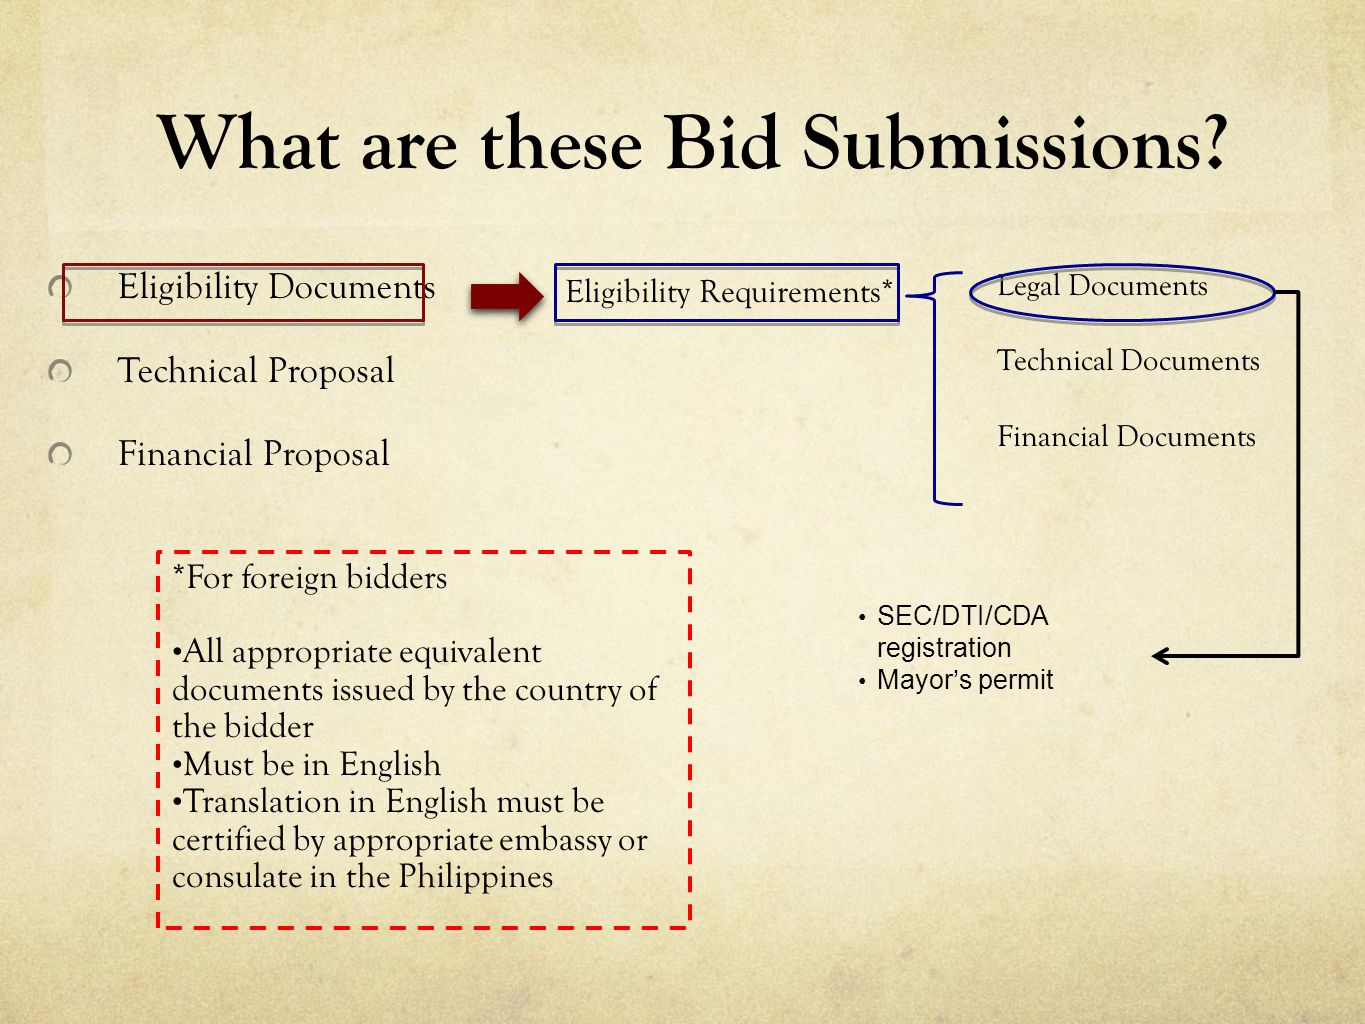 What are these Bid Submissions